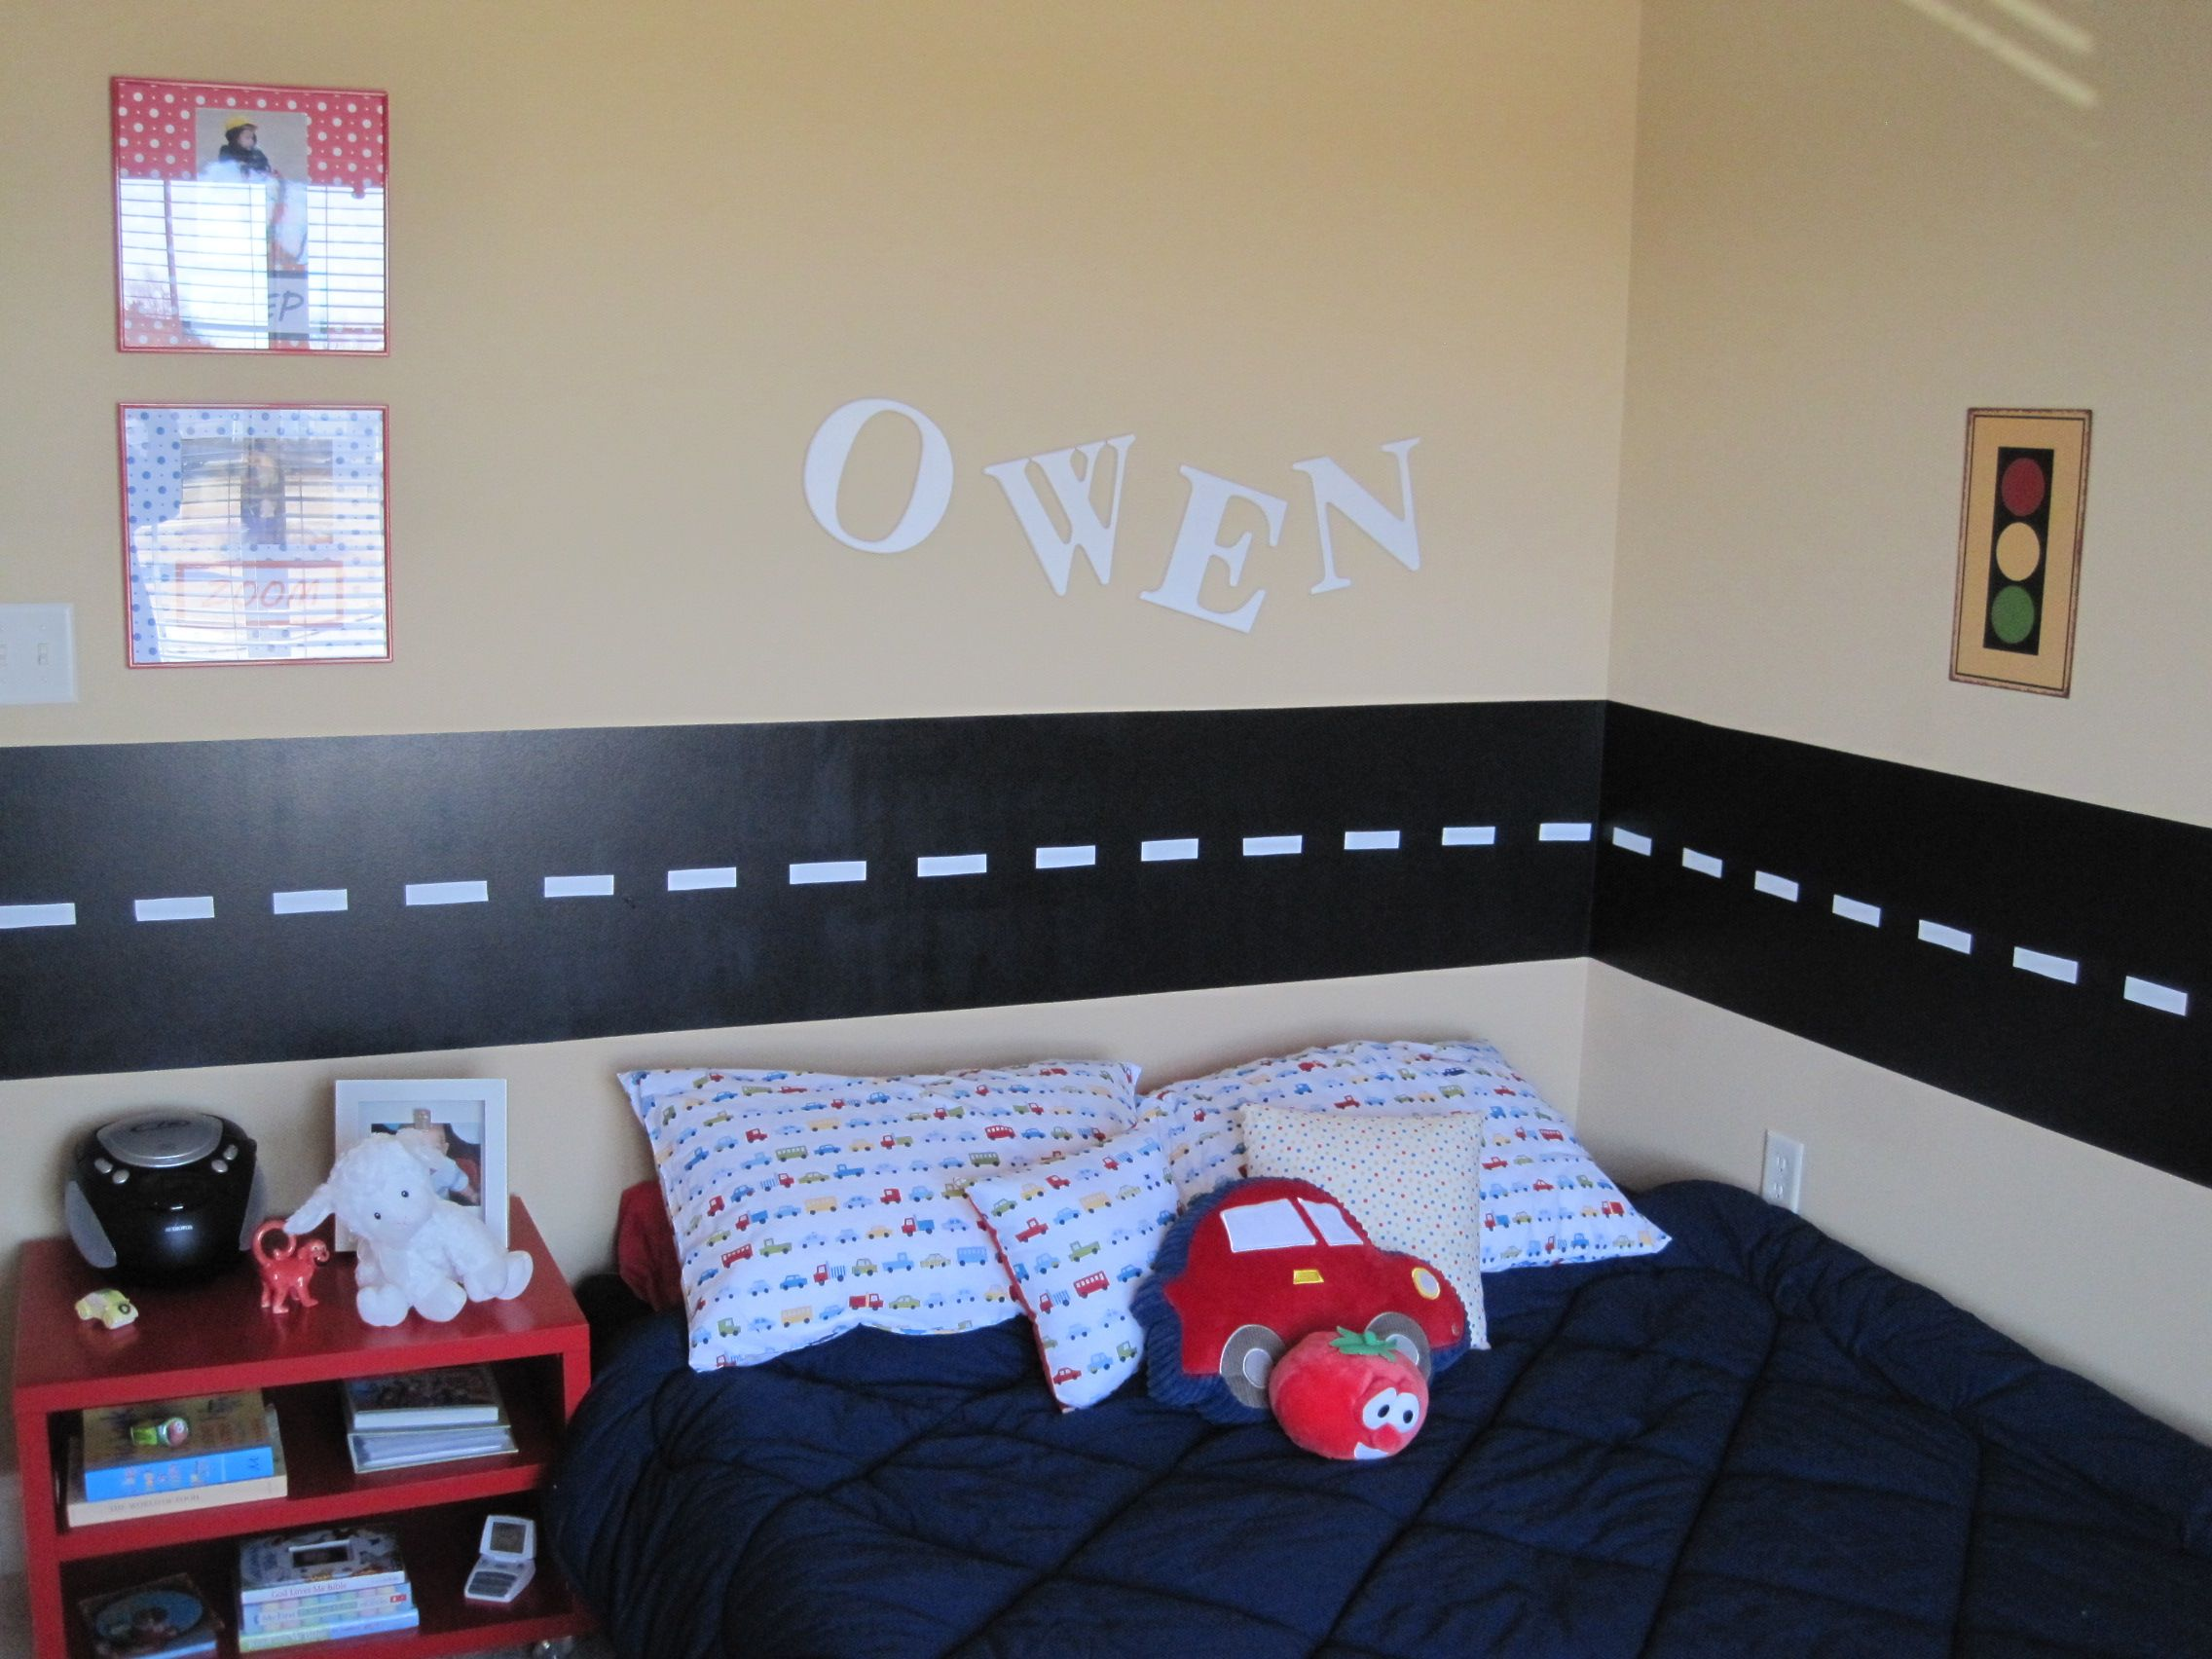 Simple bedroom designs for boys - 17 Best Ideas About Race Car Room On Pinterest Boys Car Bedroom Race Car Bedroom And Car Room